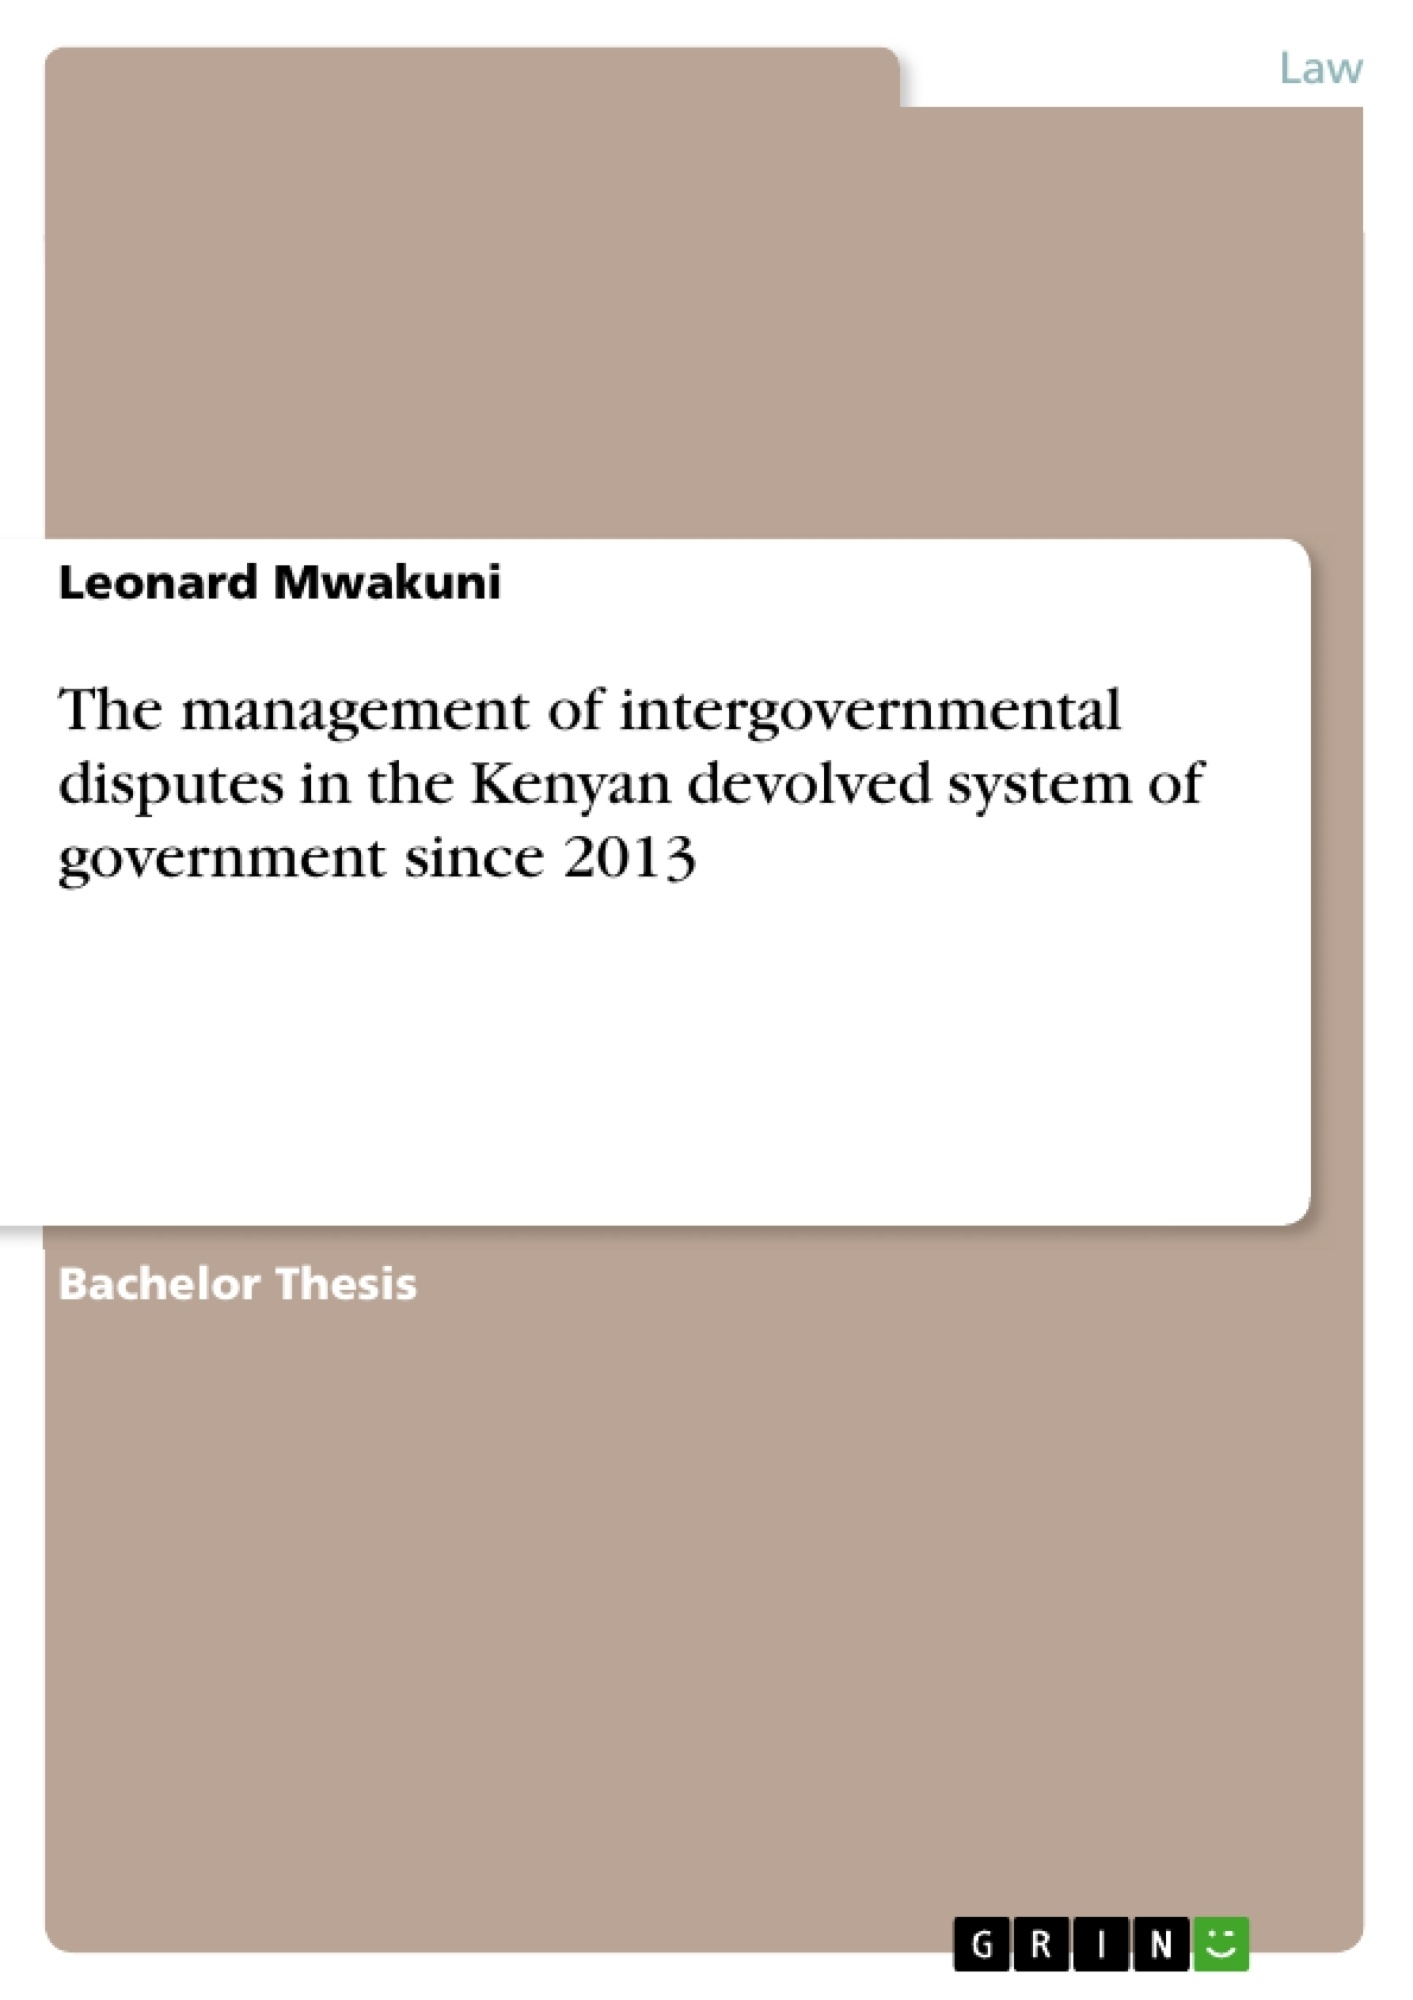 Title: The management of intergovernmental disputes in the Kenyan devolved system of government since 2013